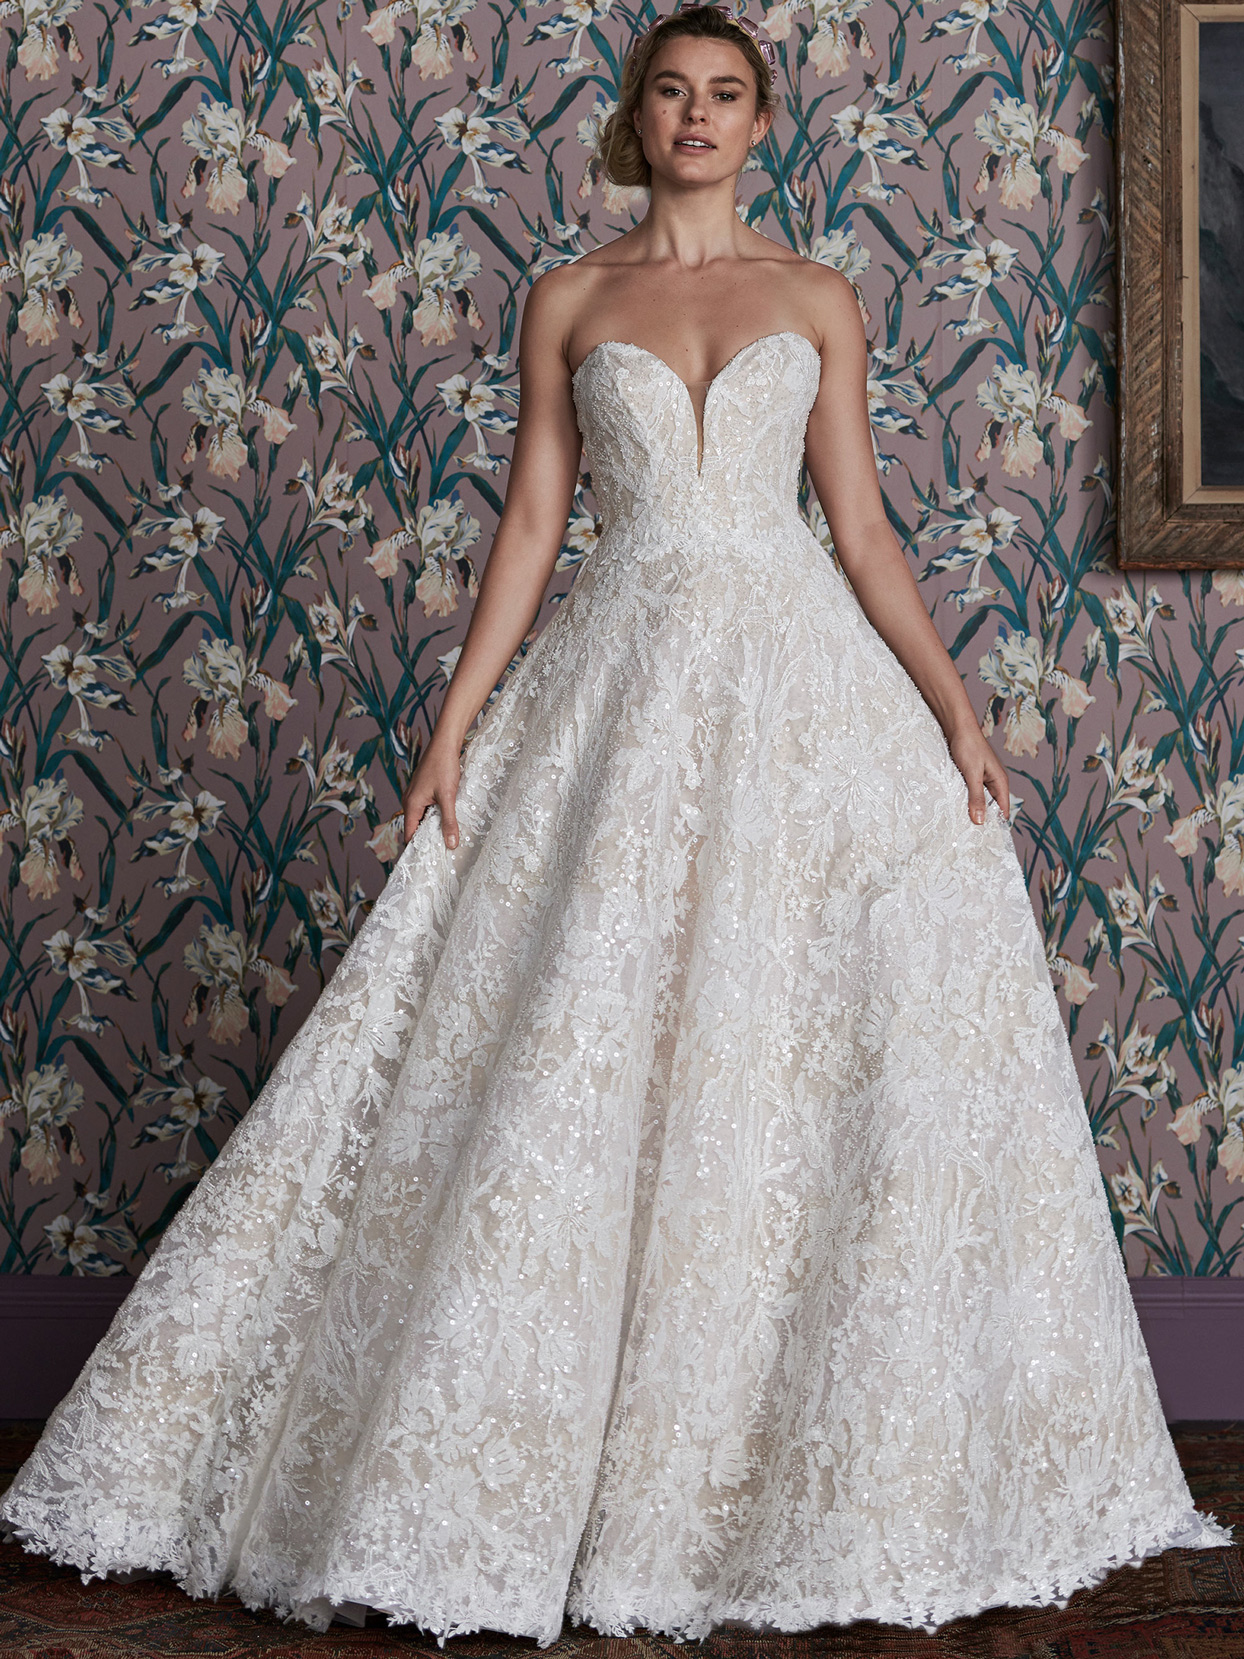 justin alexander beaded lace strapless a-line wedding dress spring 2021